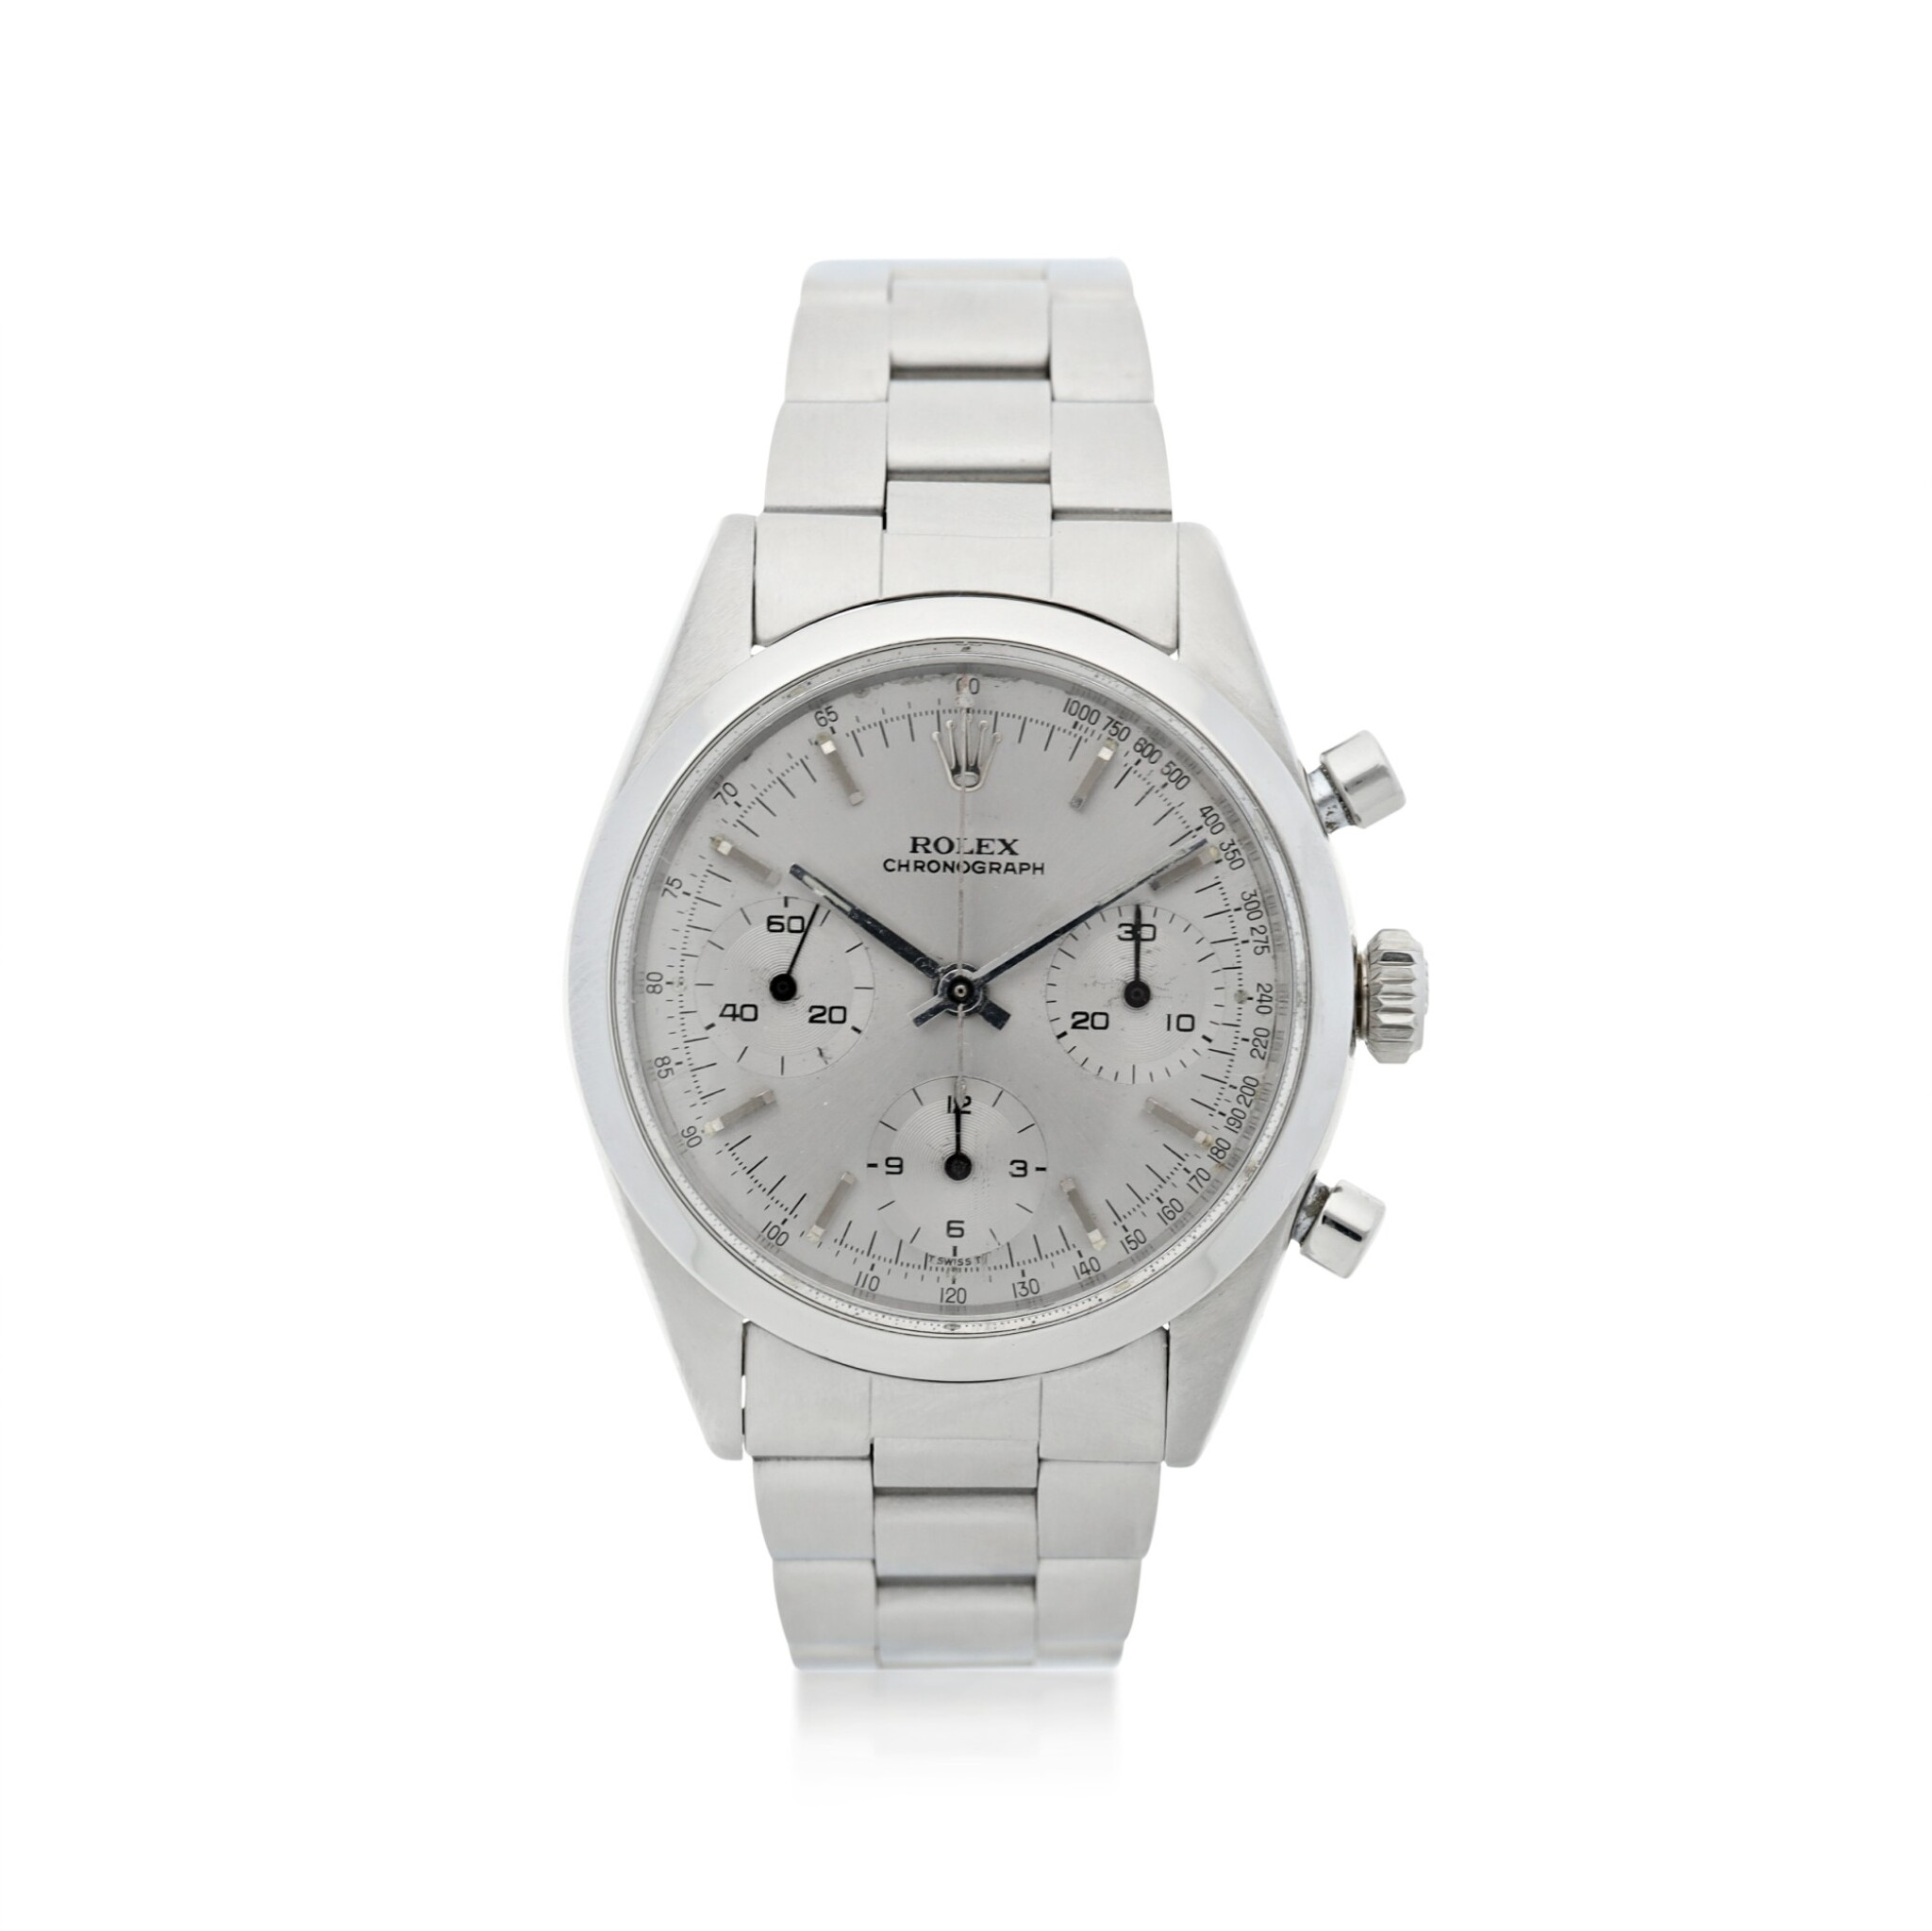 View full screen - View 1 of Lot 2. ROLEX | REFERENCE 6238 'PRE-DAYTONA'  A STAINLESS STEEL CHRONOGRAPH WRISTWATCH WITH BRACELET, CIRCA 1964.